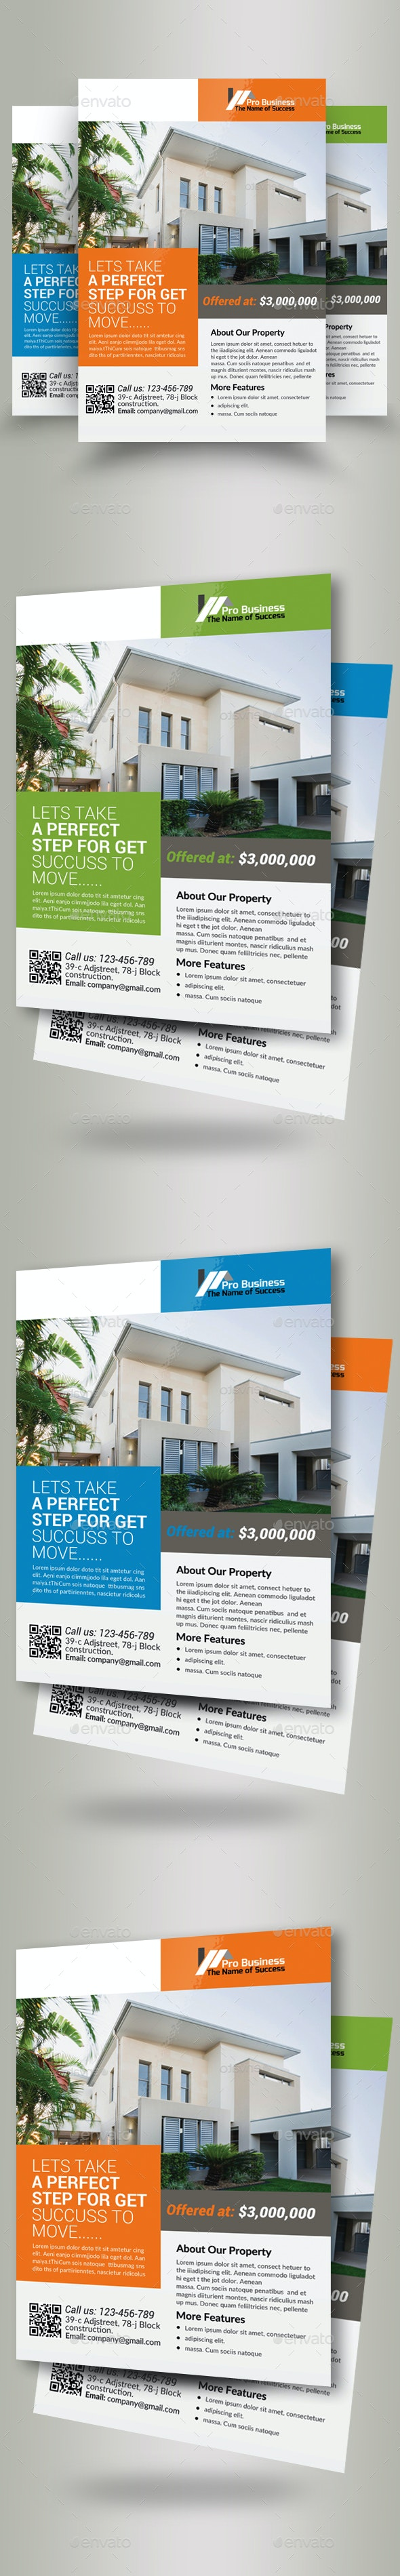 Real Estate Agency PSD Flyer - Commerce Flyers